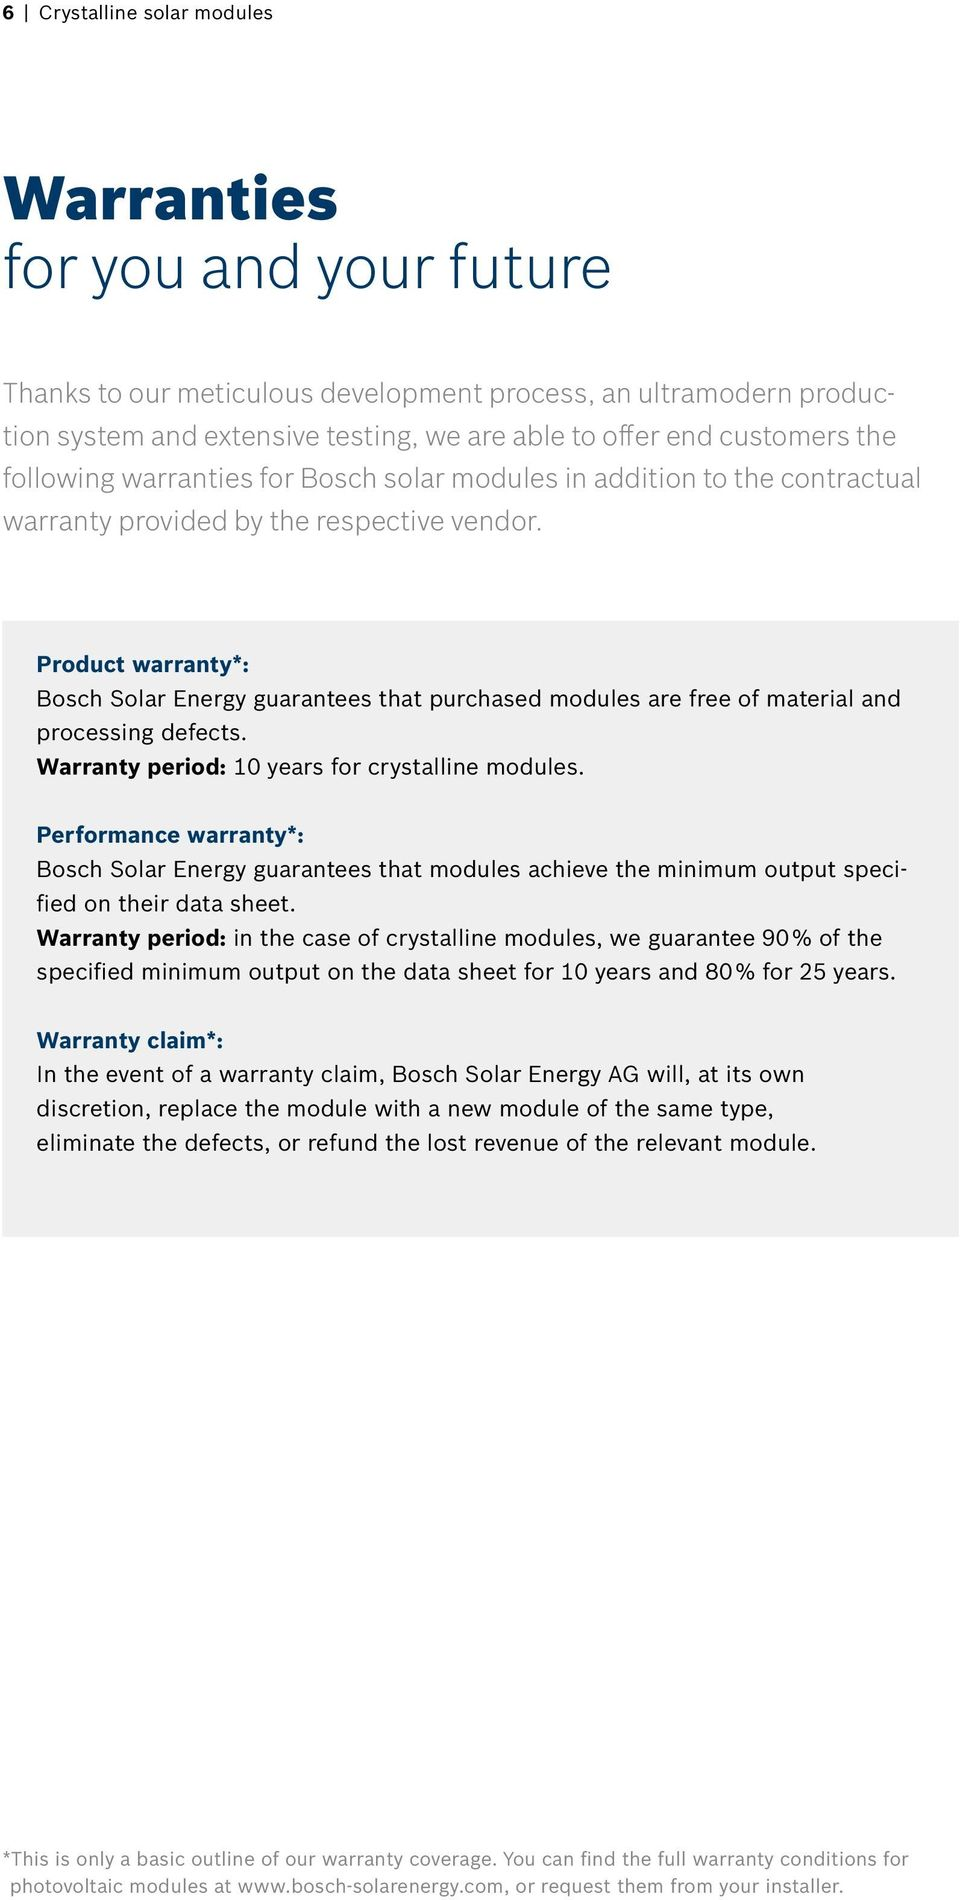 Product warranty*: Bosch Solar Energy guarantees that purchased modules are free of material and processing defects. Warranty period: 10 years for crystalline modules.